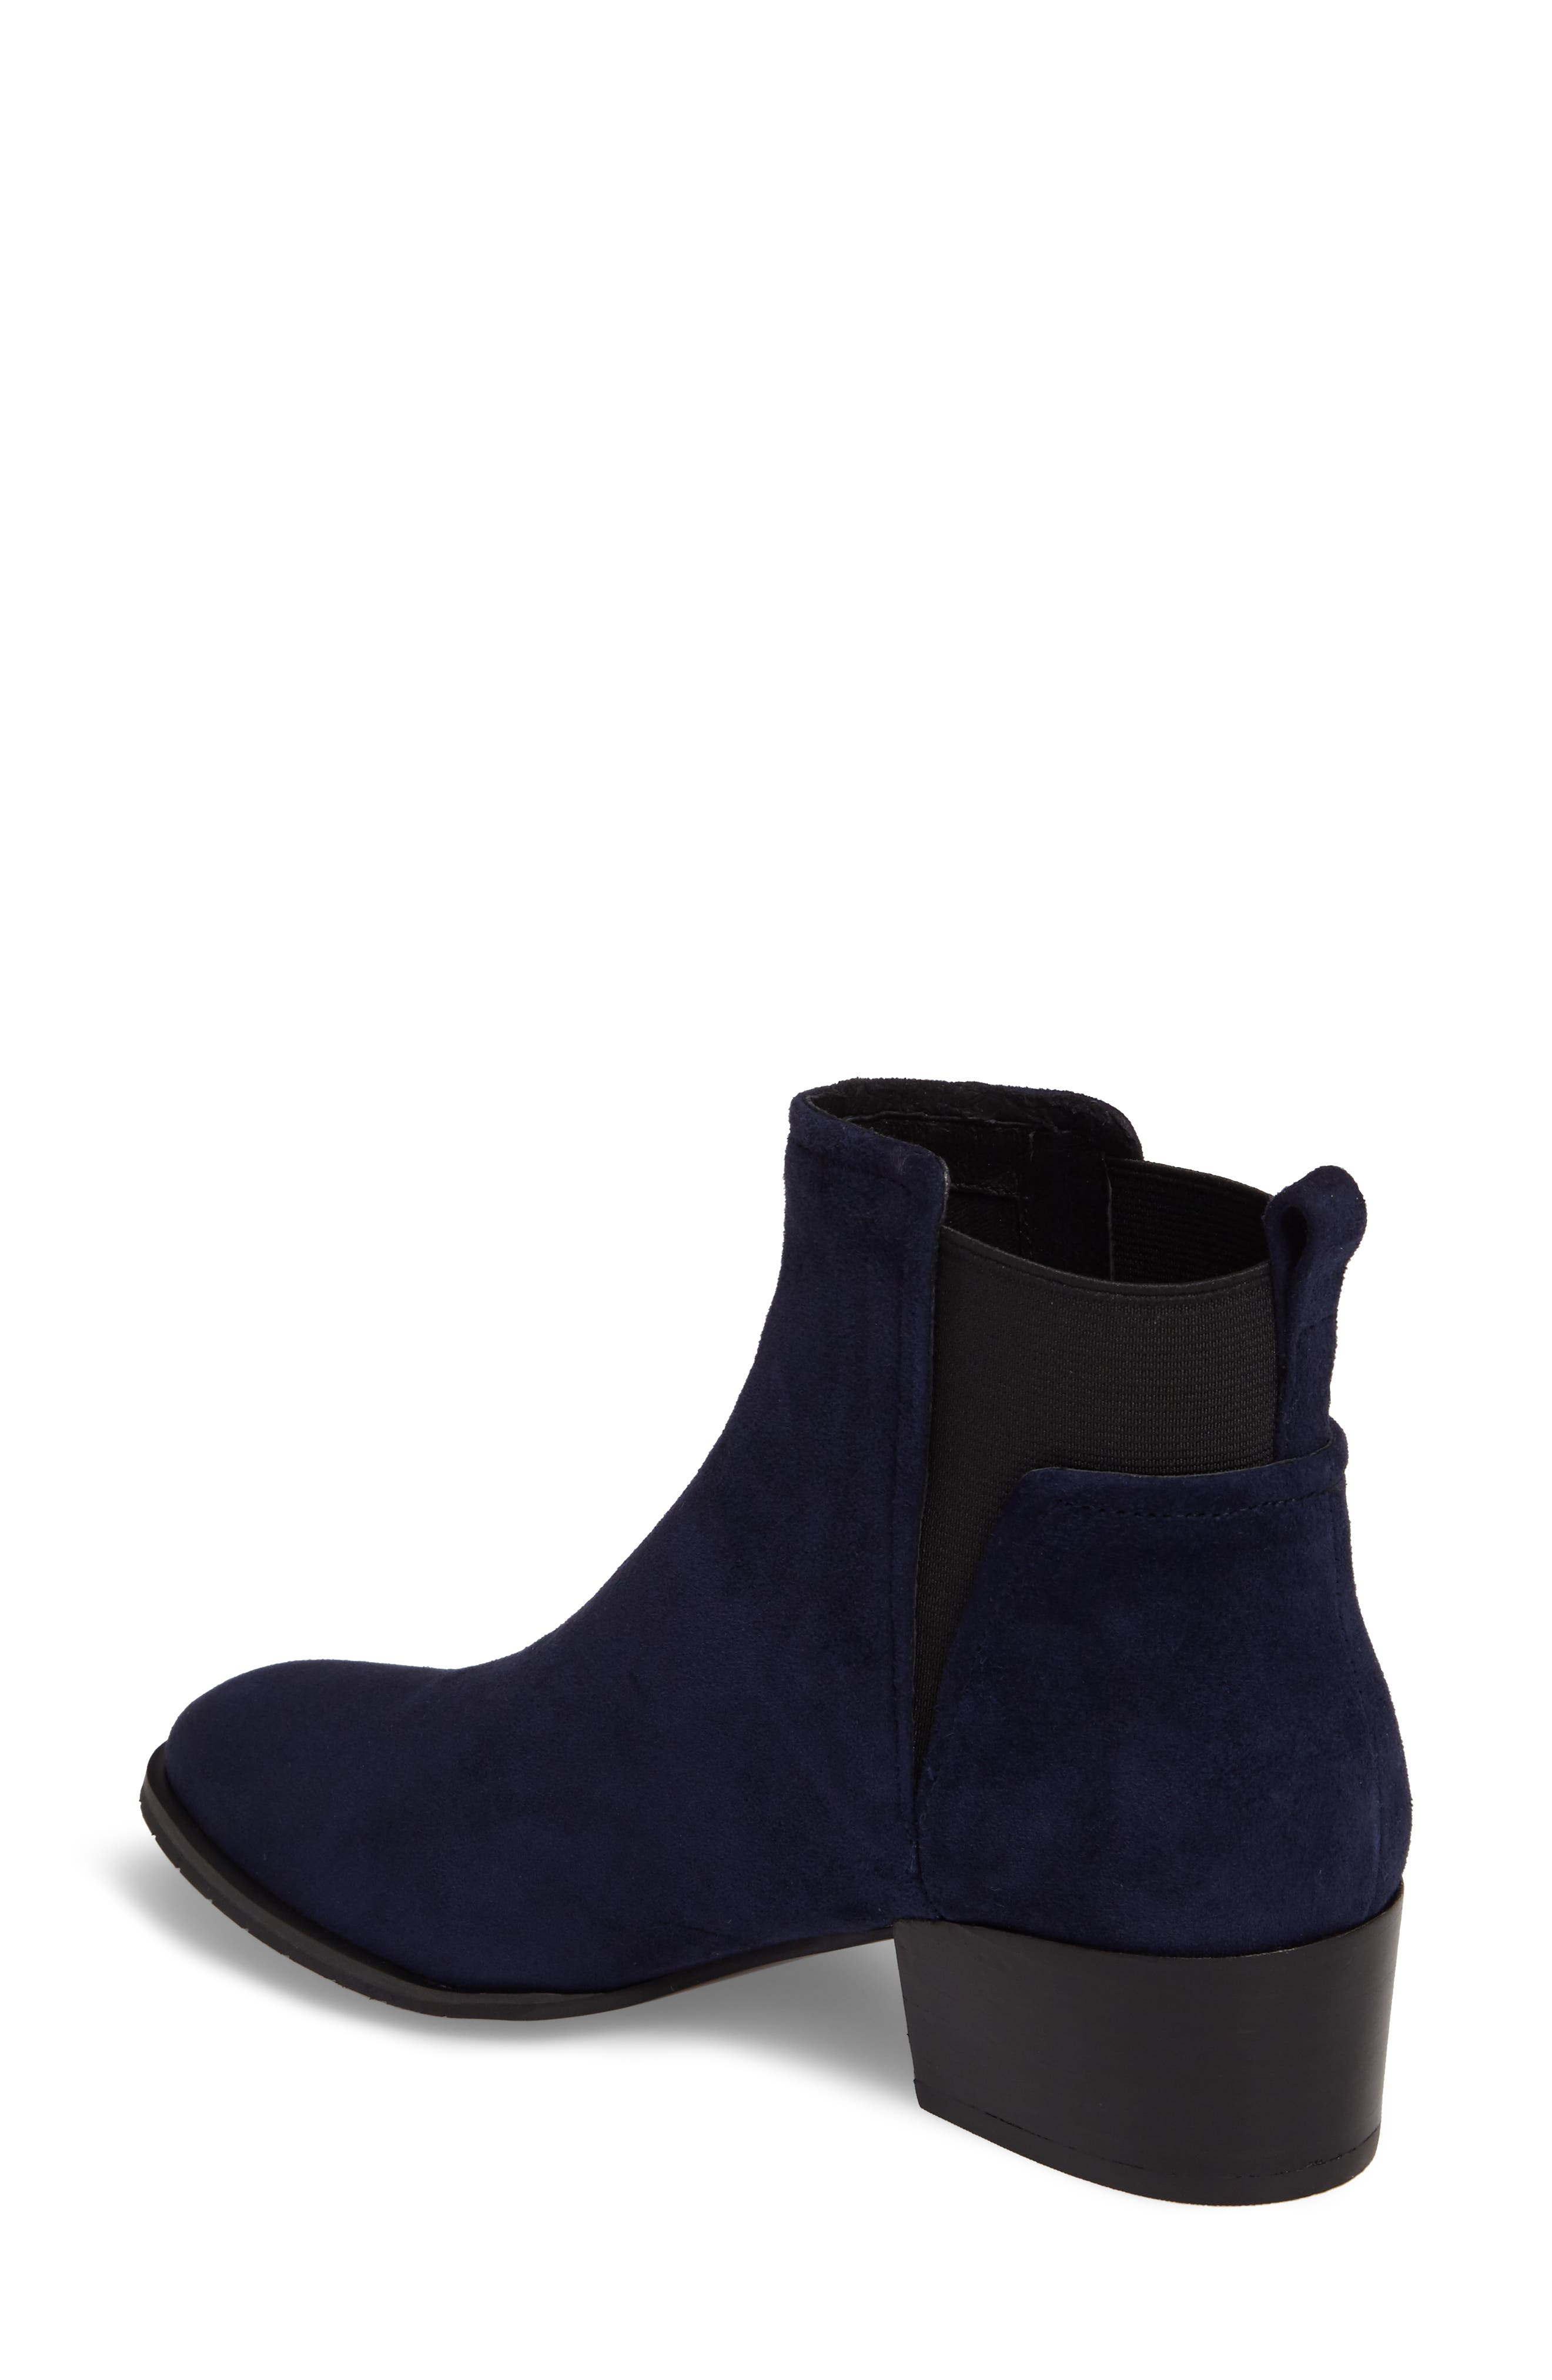 Artie Bootie,                             Alternate thumbnail 2, color,                             Navy Suede